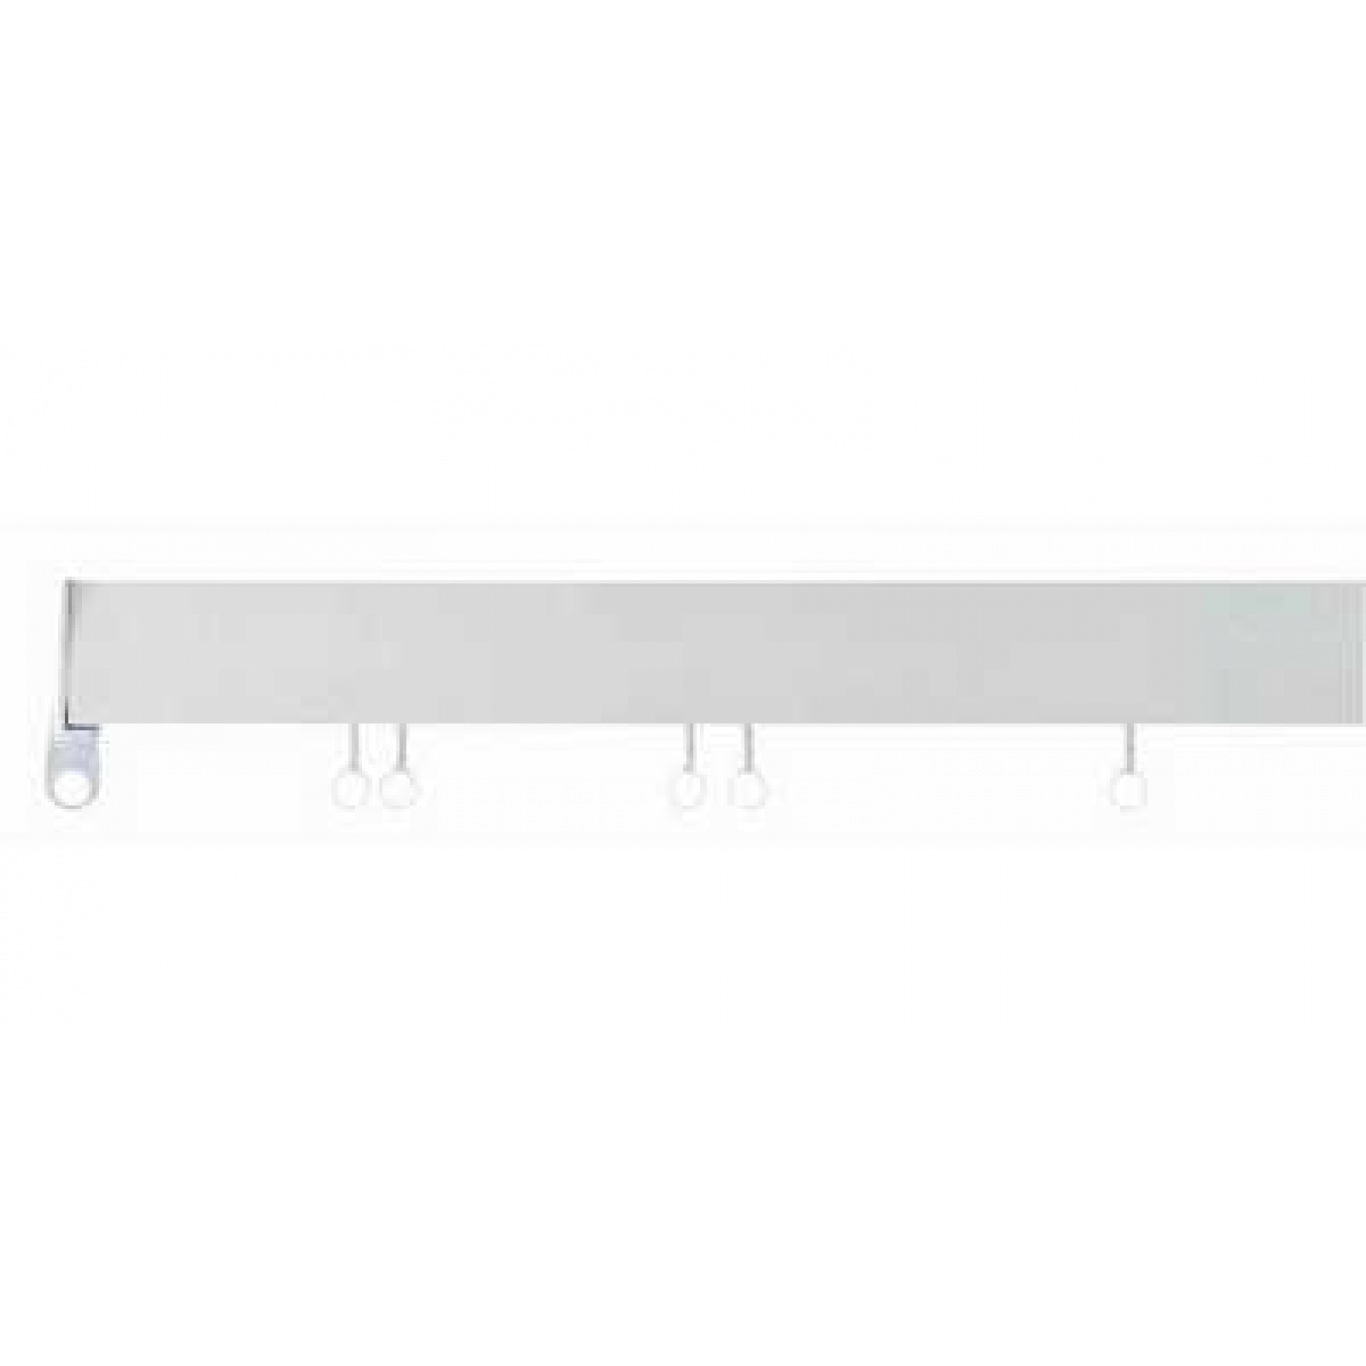 Image of Swish Deluxe White PVC Track 275cm